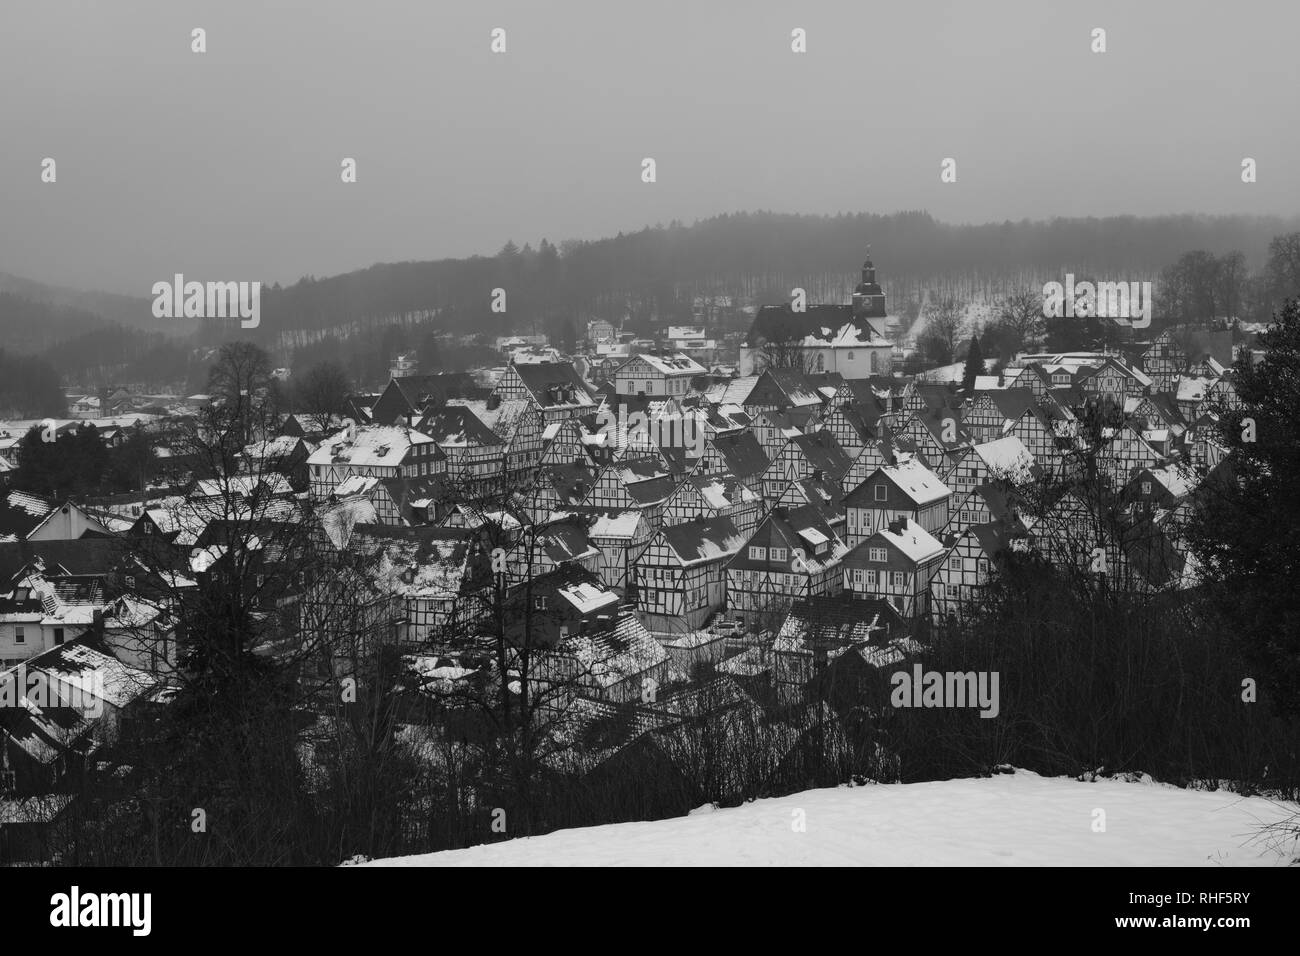 Germany Old Town of Freudenberg Nearby Cologne and Siegen - Stock Image